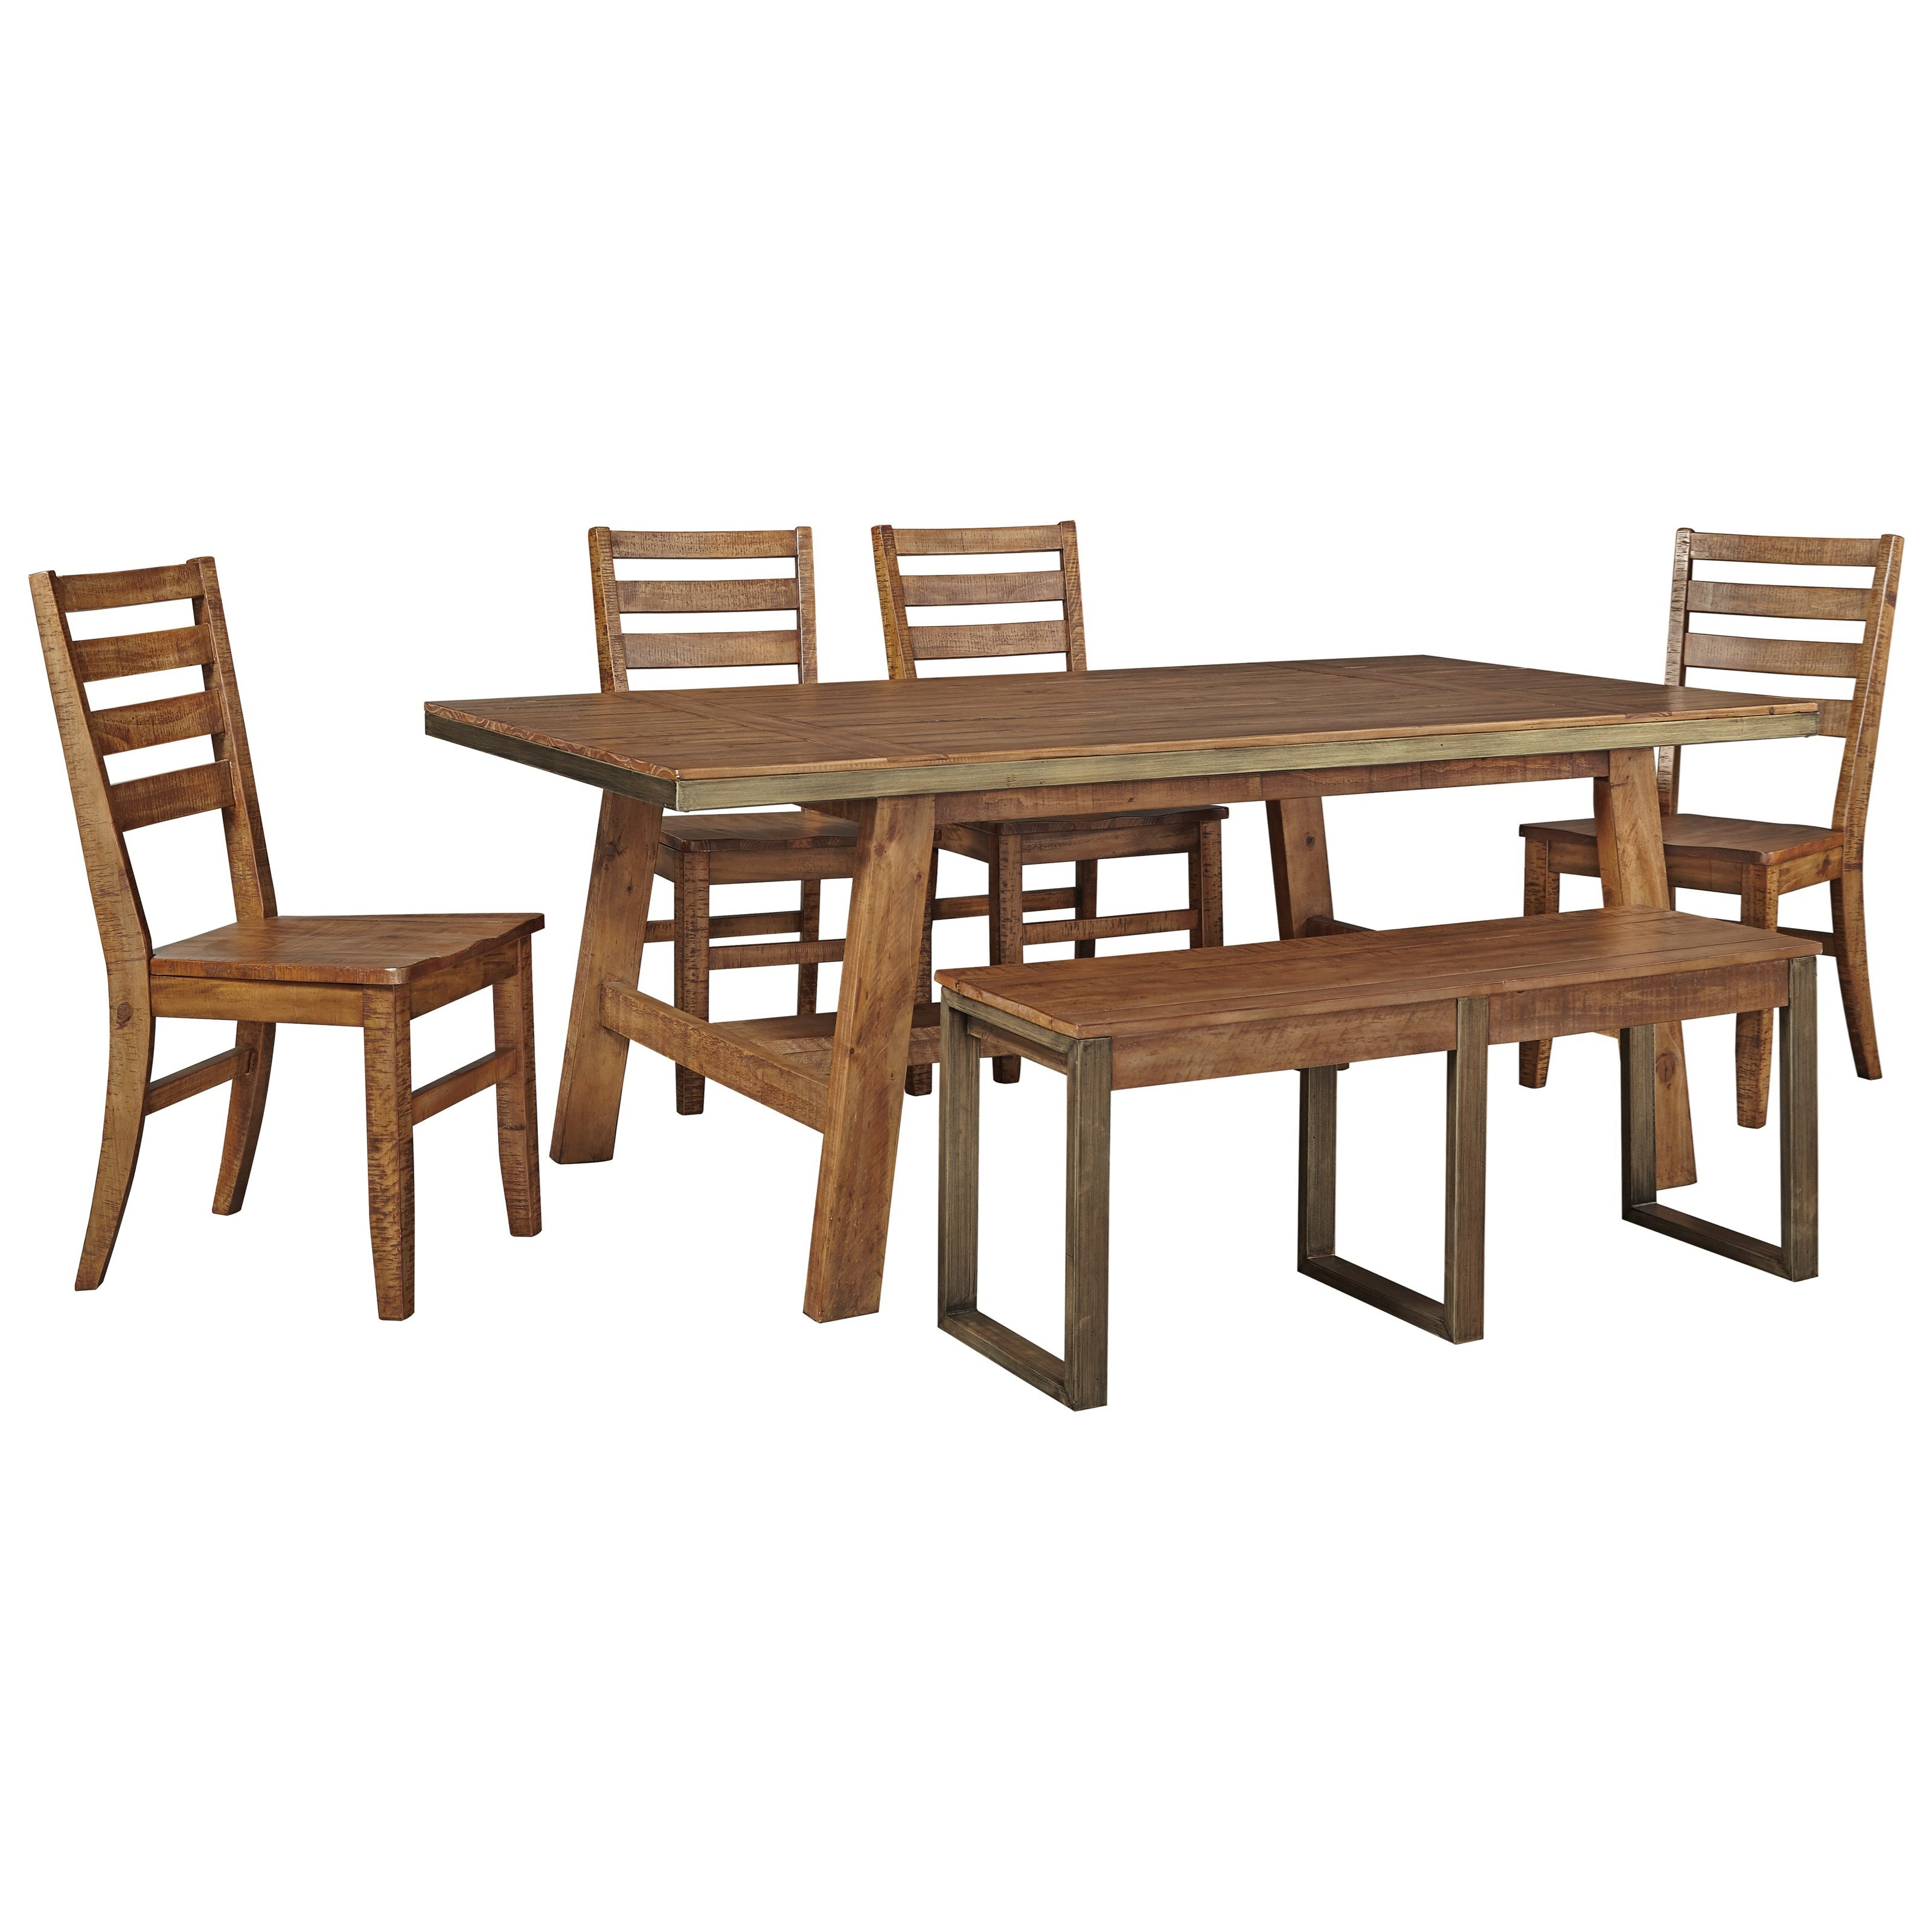 Signature Design by Ashley Dondie 6-Piece Solid Wood Table Set w/ Bench - Item Number: D663-25+4x01+00